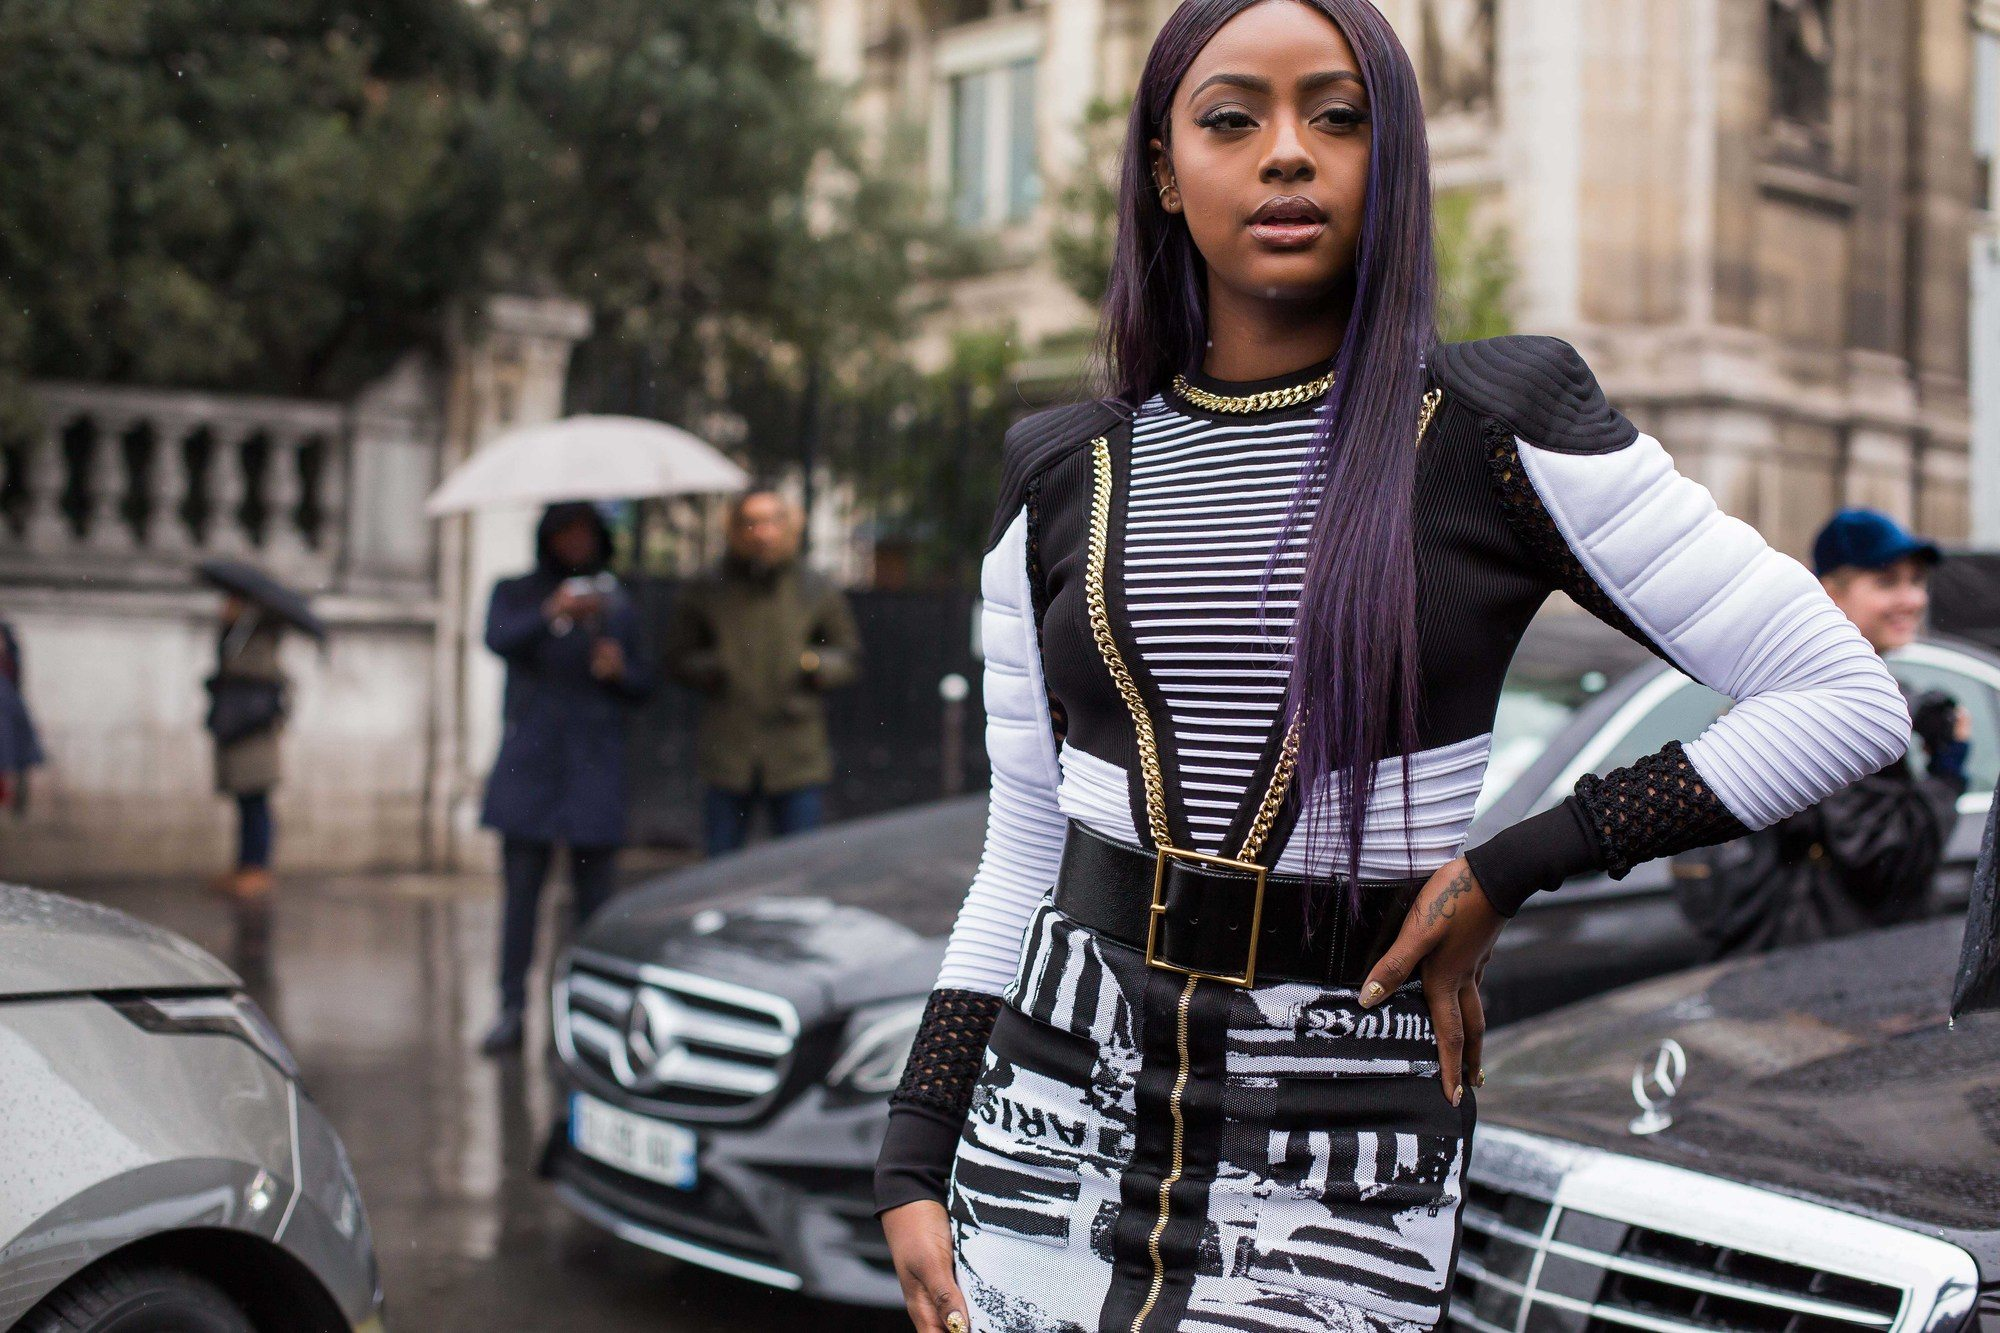 street styler standing in the road with a long purple straight hair wig